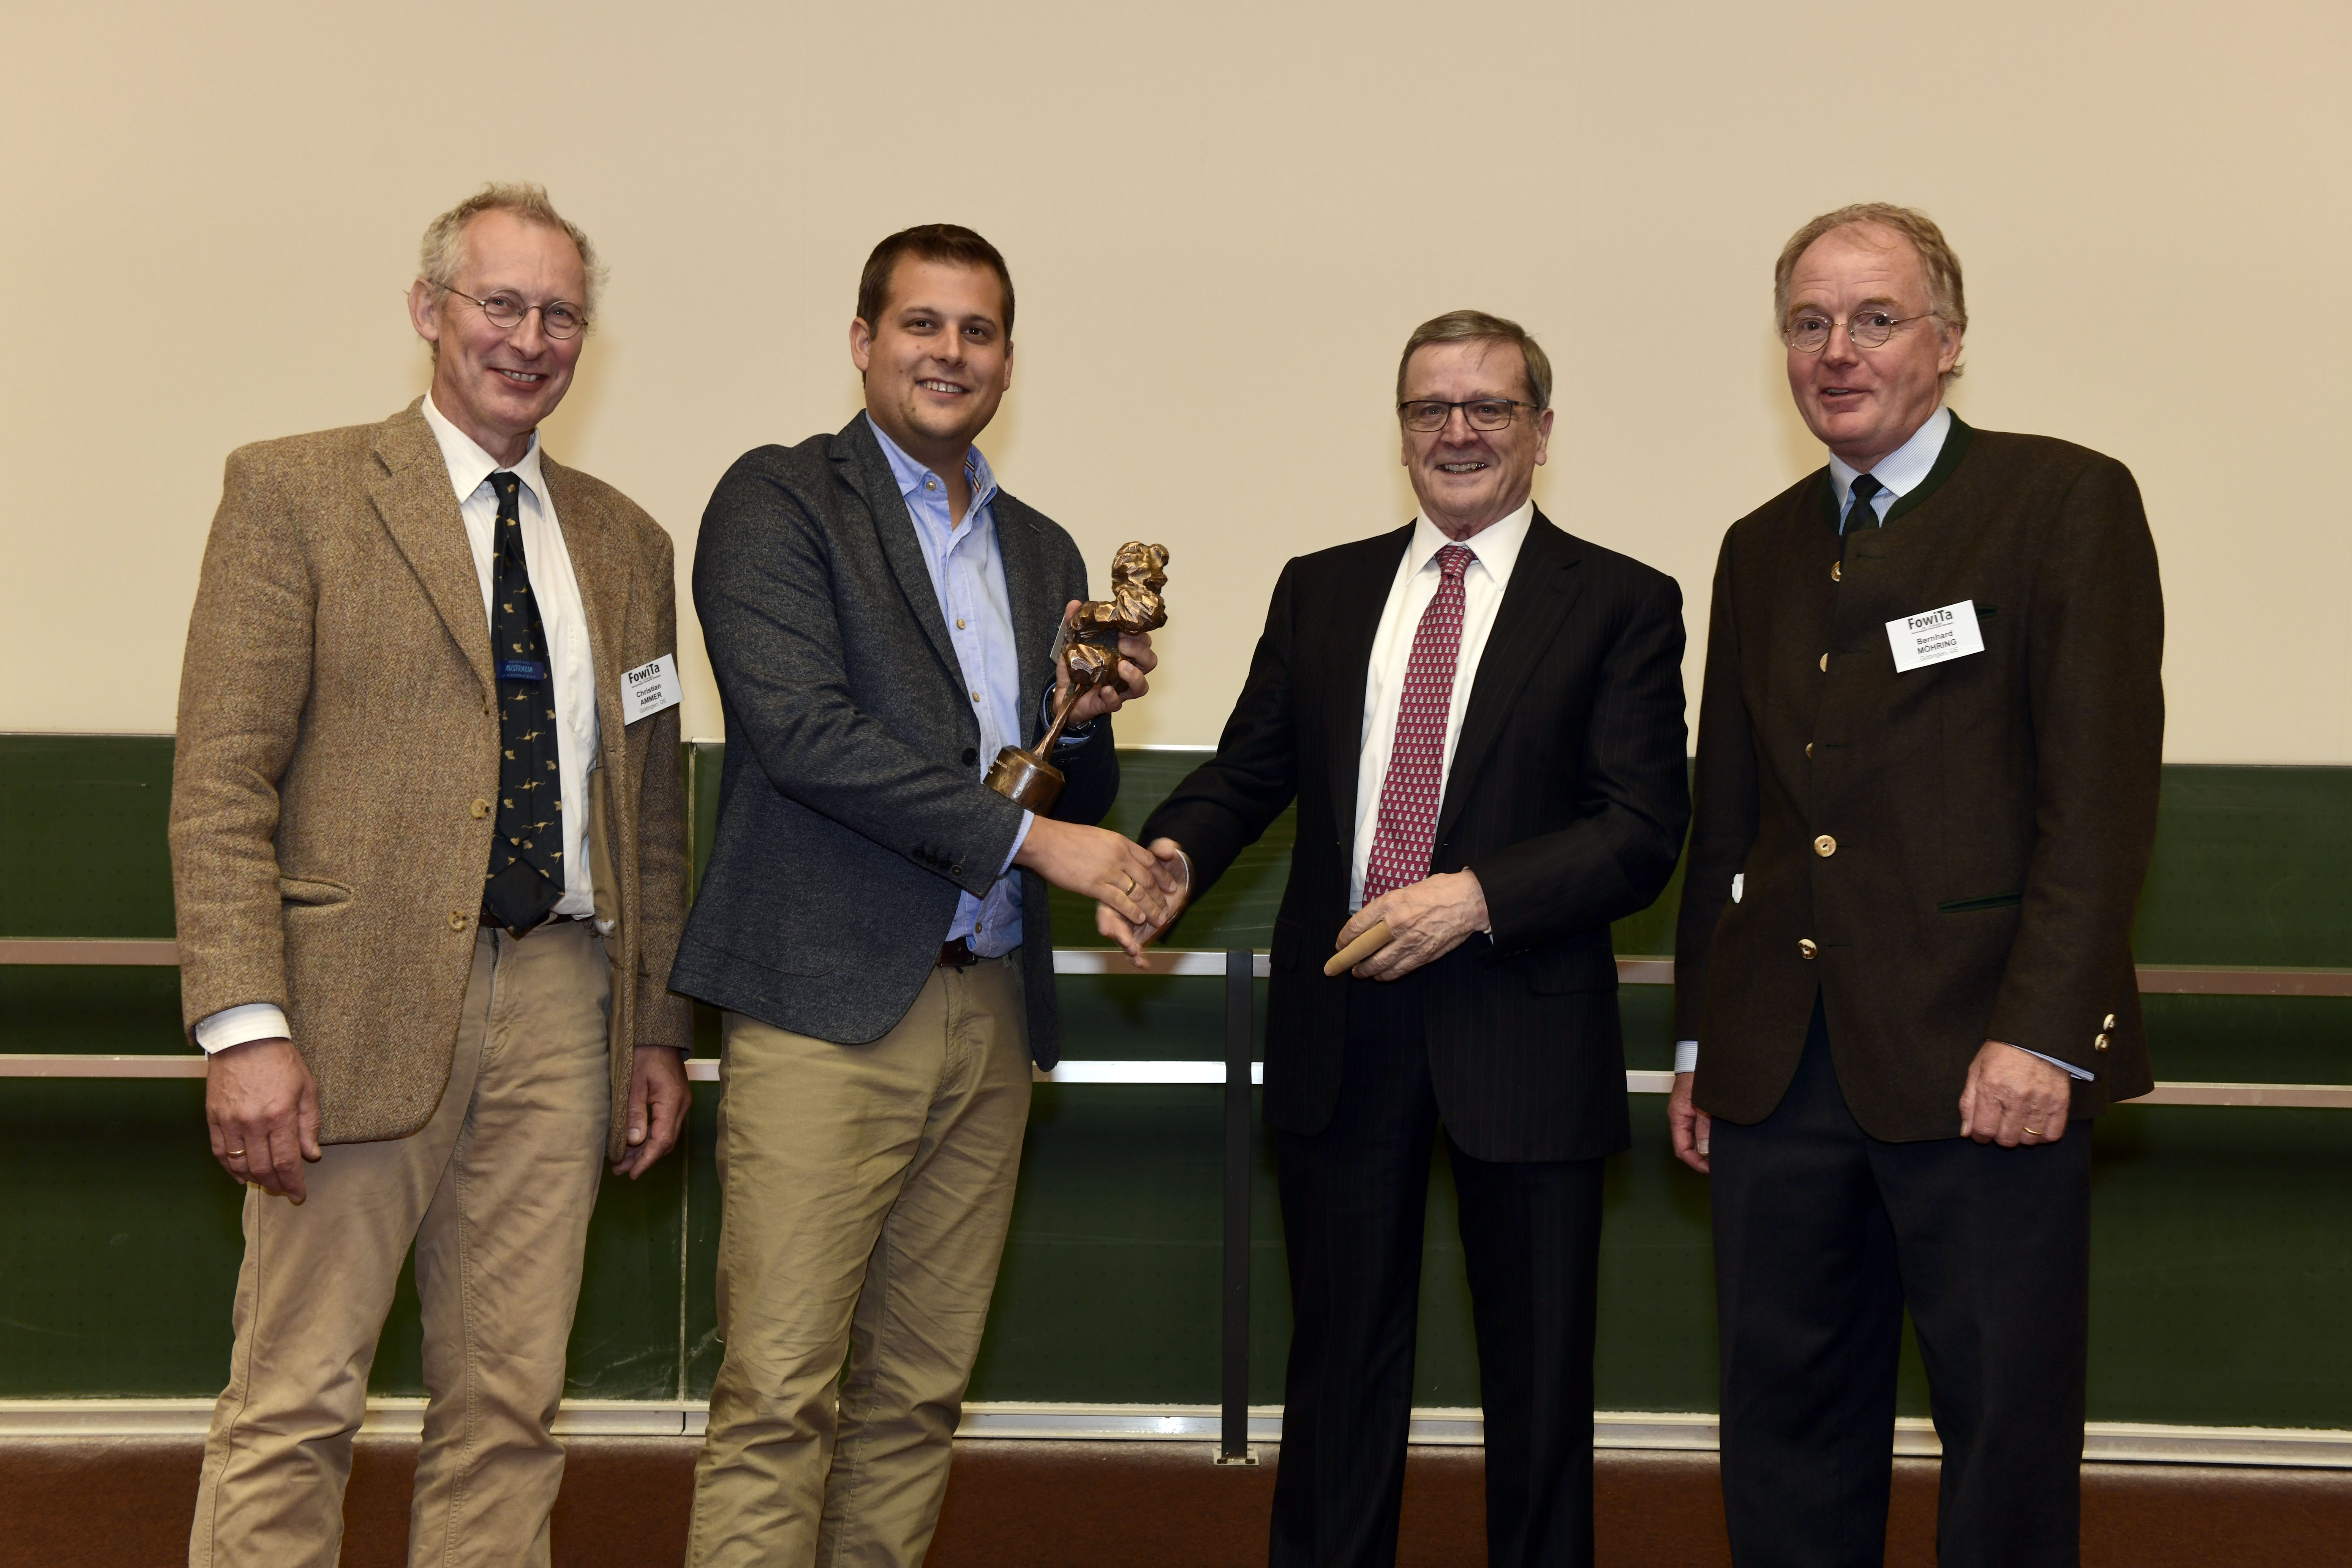 German Forest Science Prize (from left): Prof. Dr. Christian Ammer (Member of the prize committee), Dr. Dominik Seidel, Robert Mayr and Dean Prof. Dr. Bernhard Möhring.